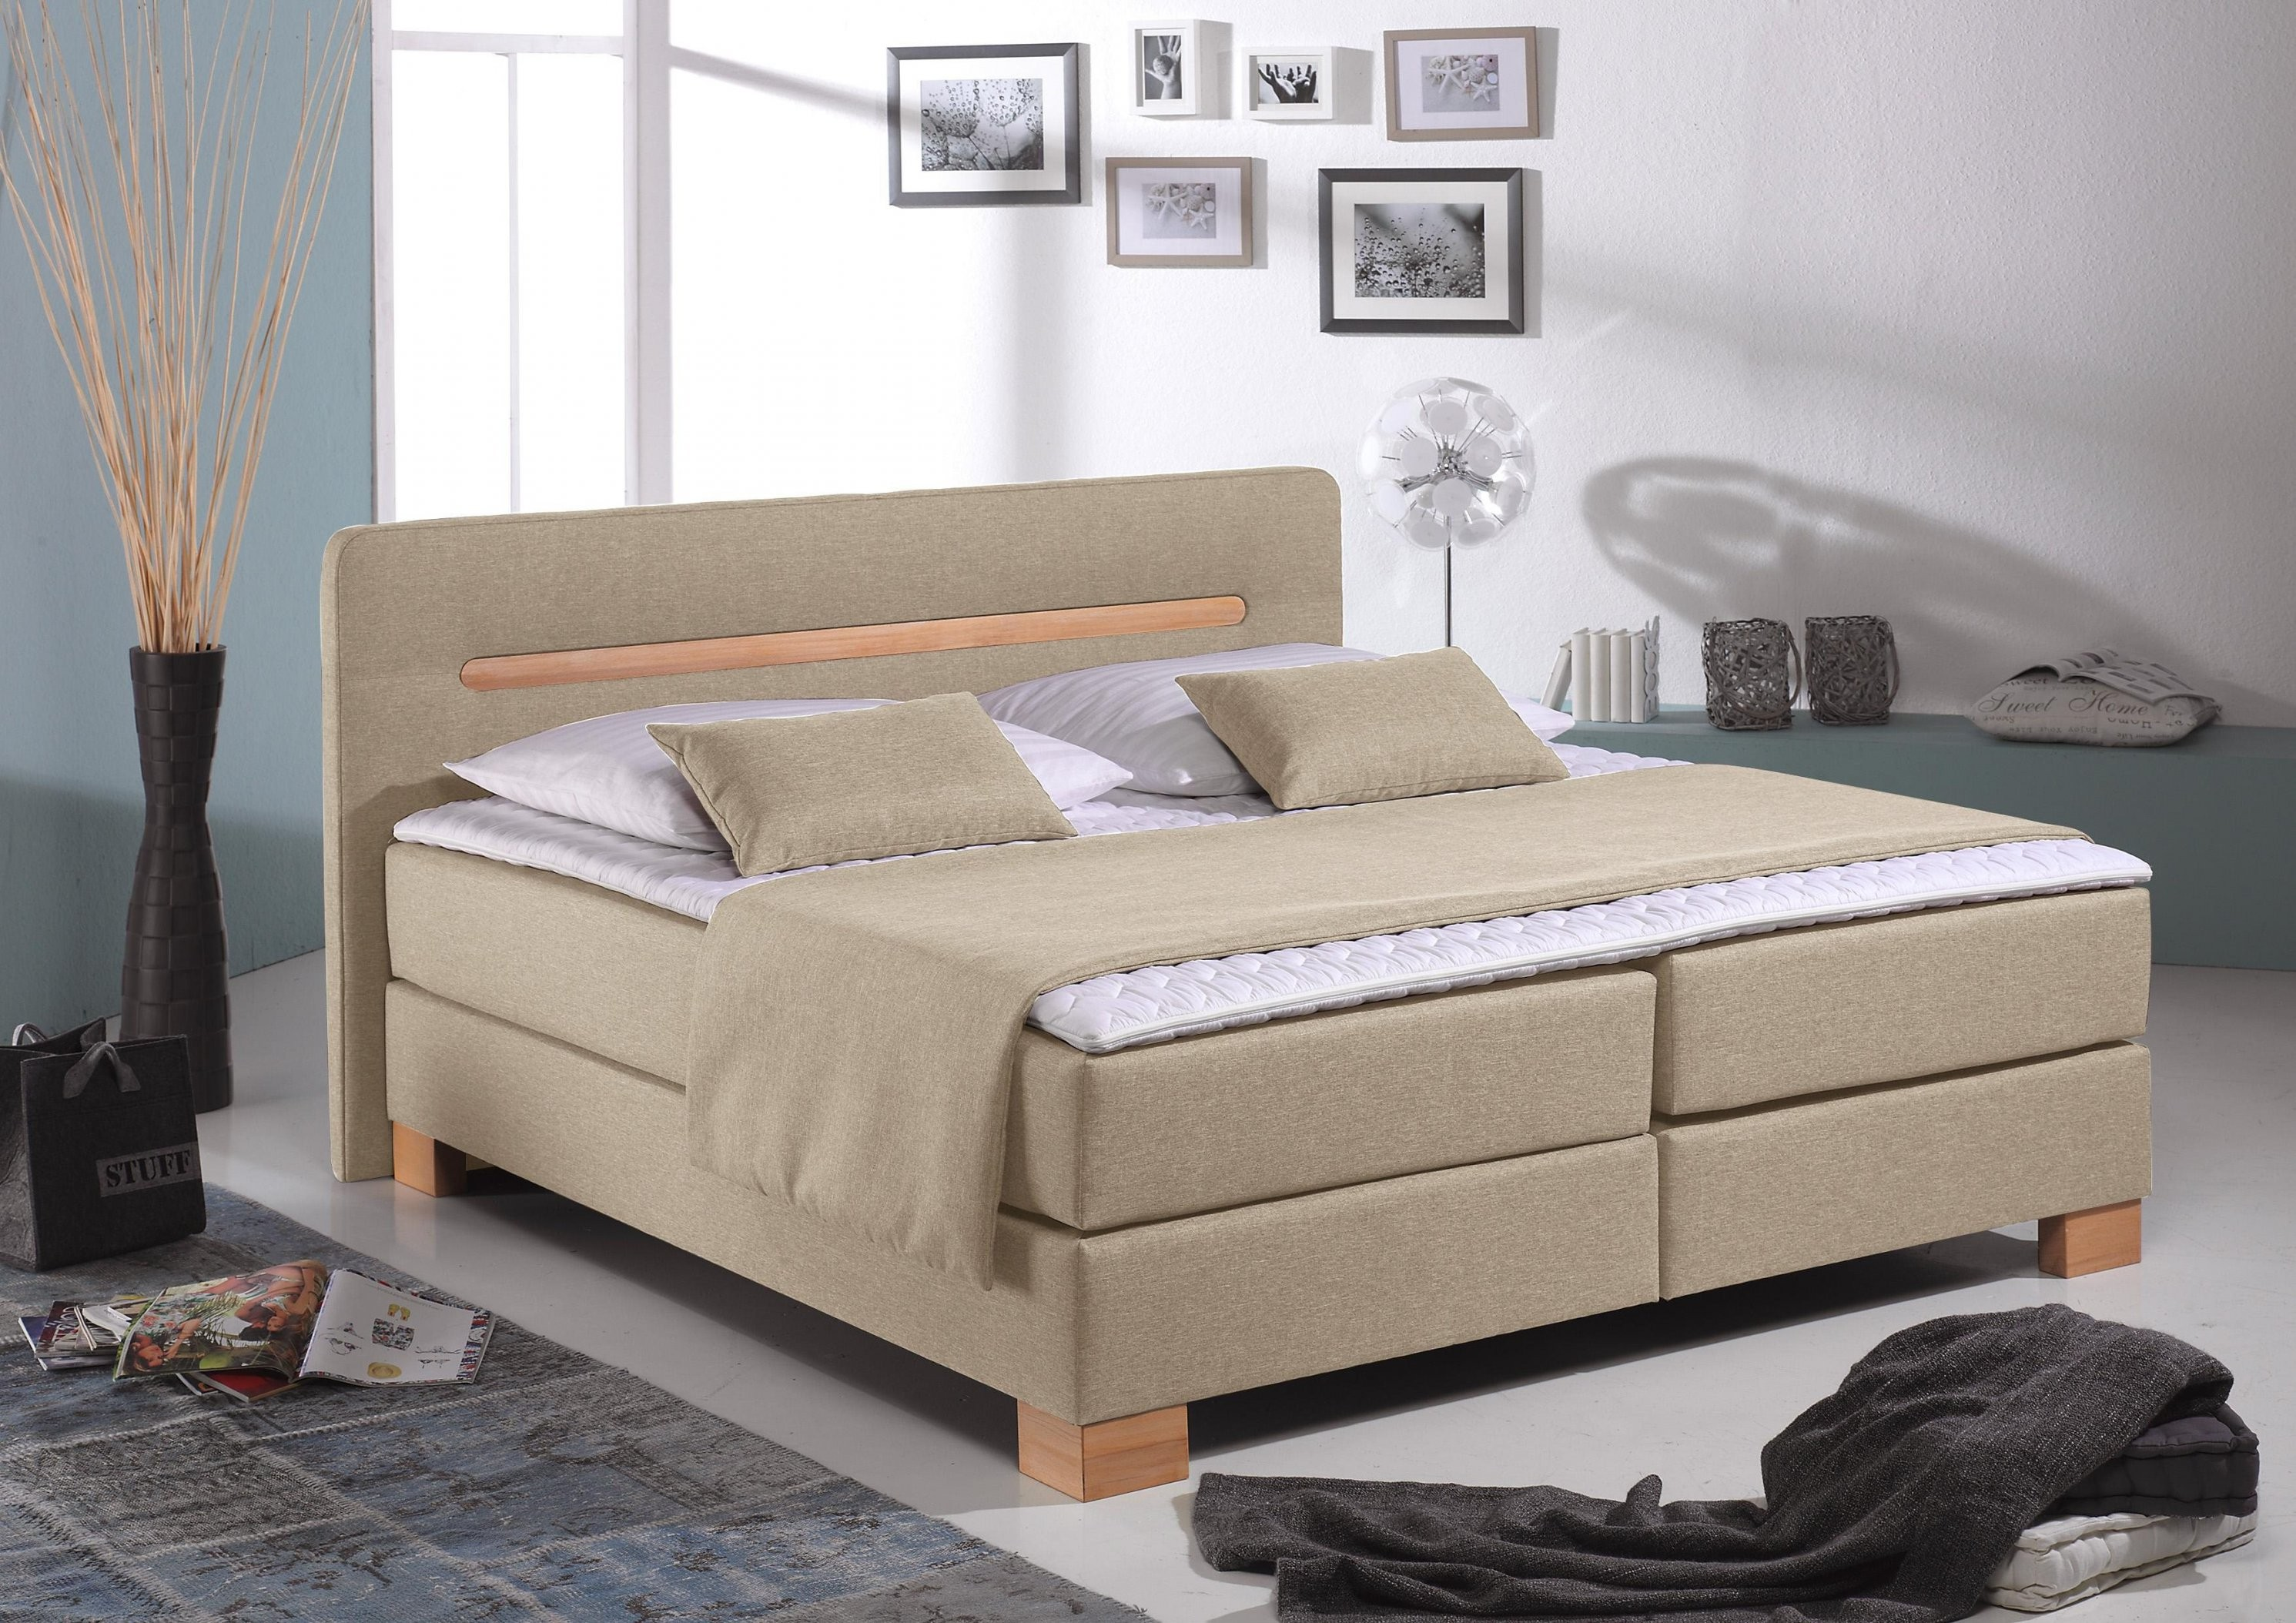 Home Affaire Boxspringbett Home Affaire Boxspringbett Romantica von Boxspring Bett Home Affaire Romantica Bild